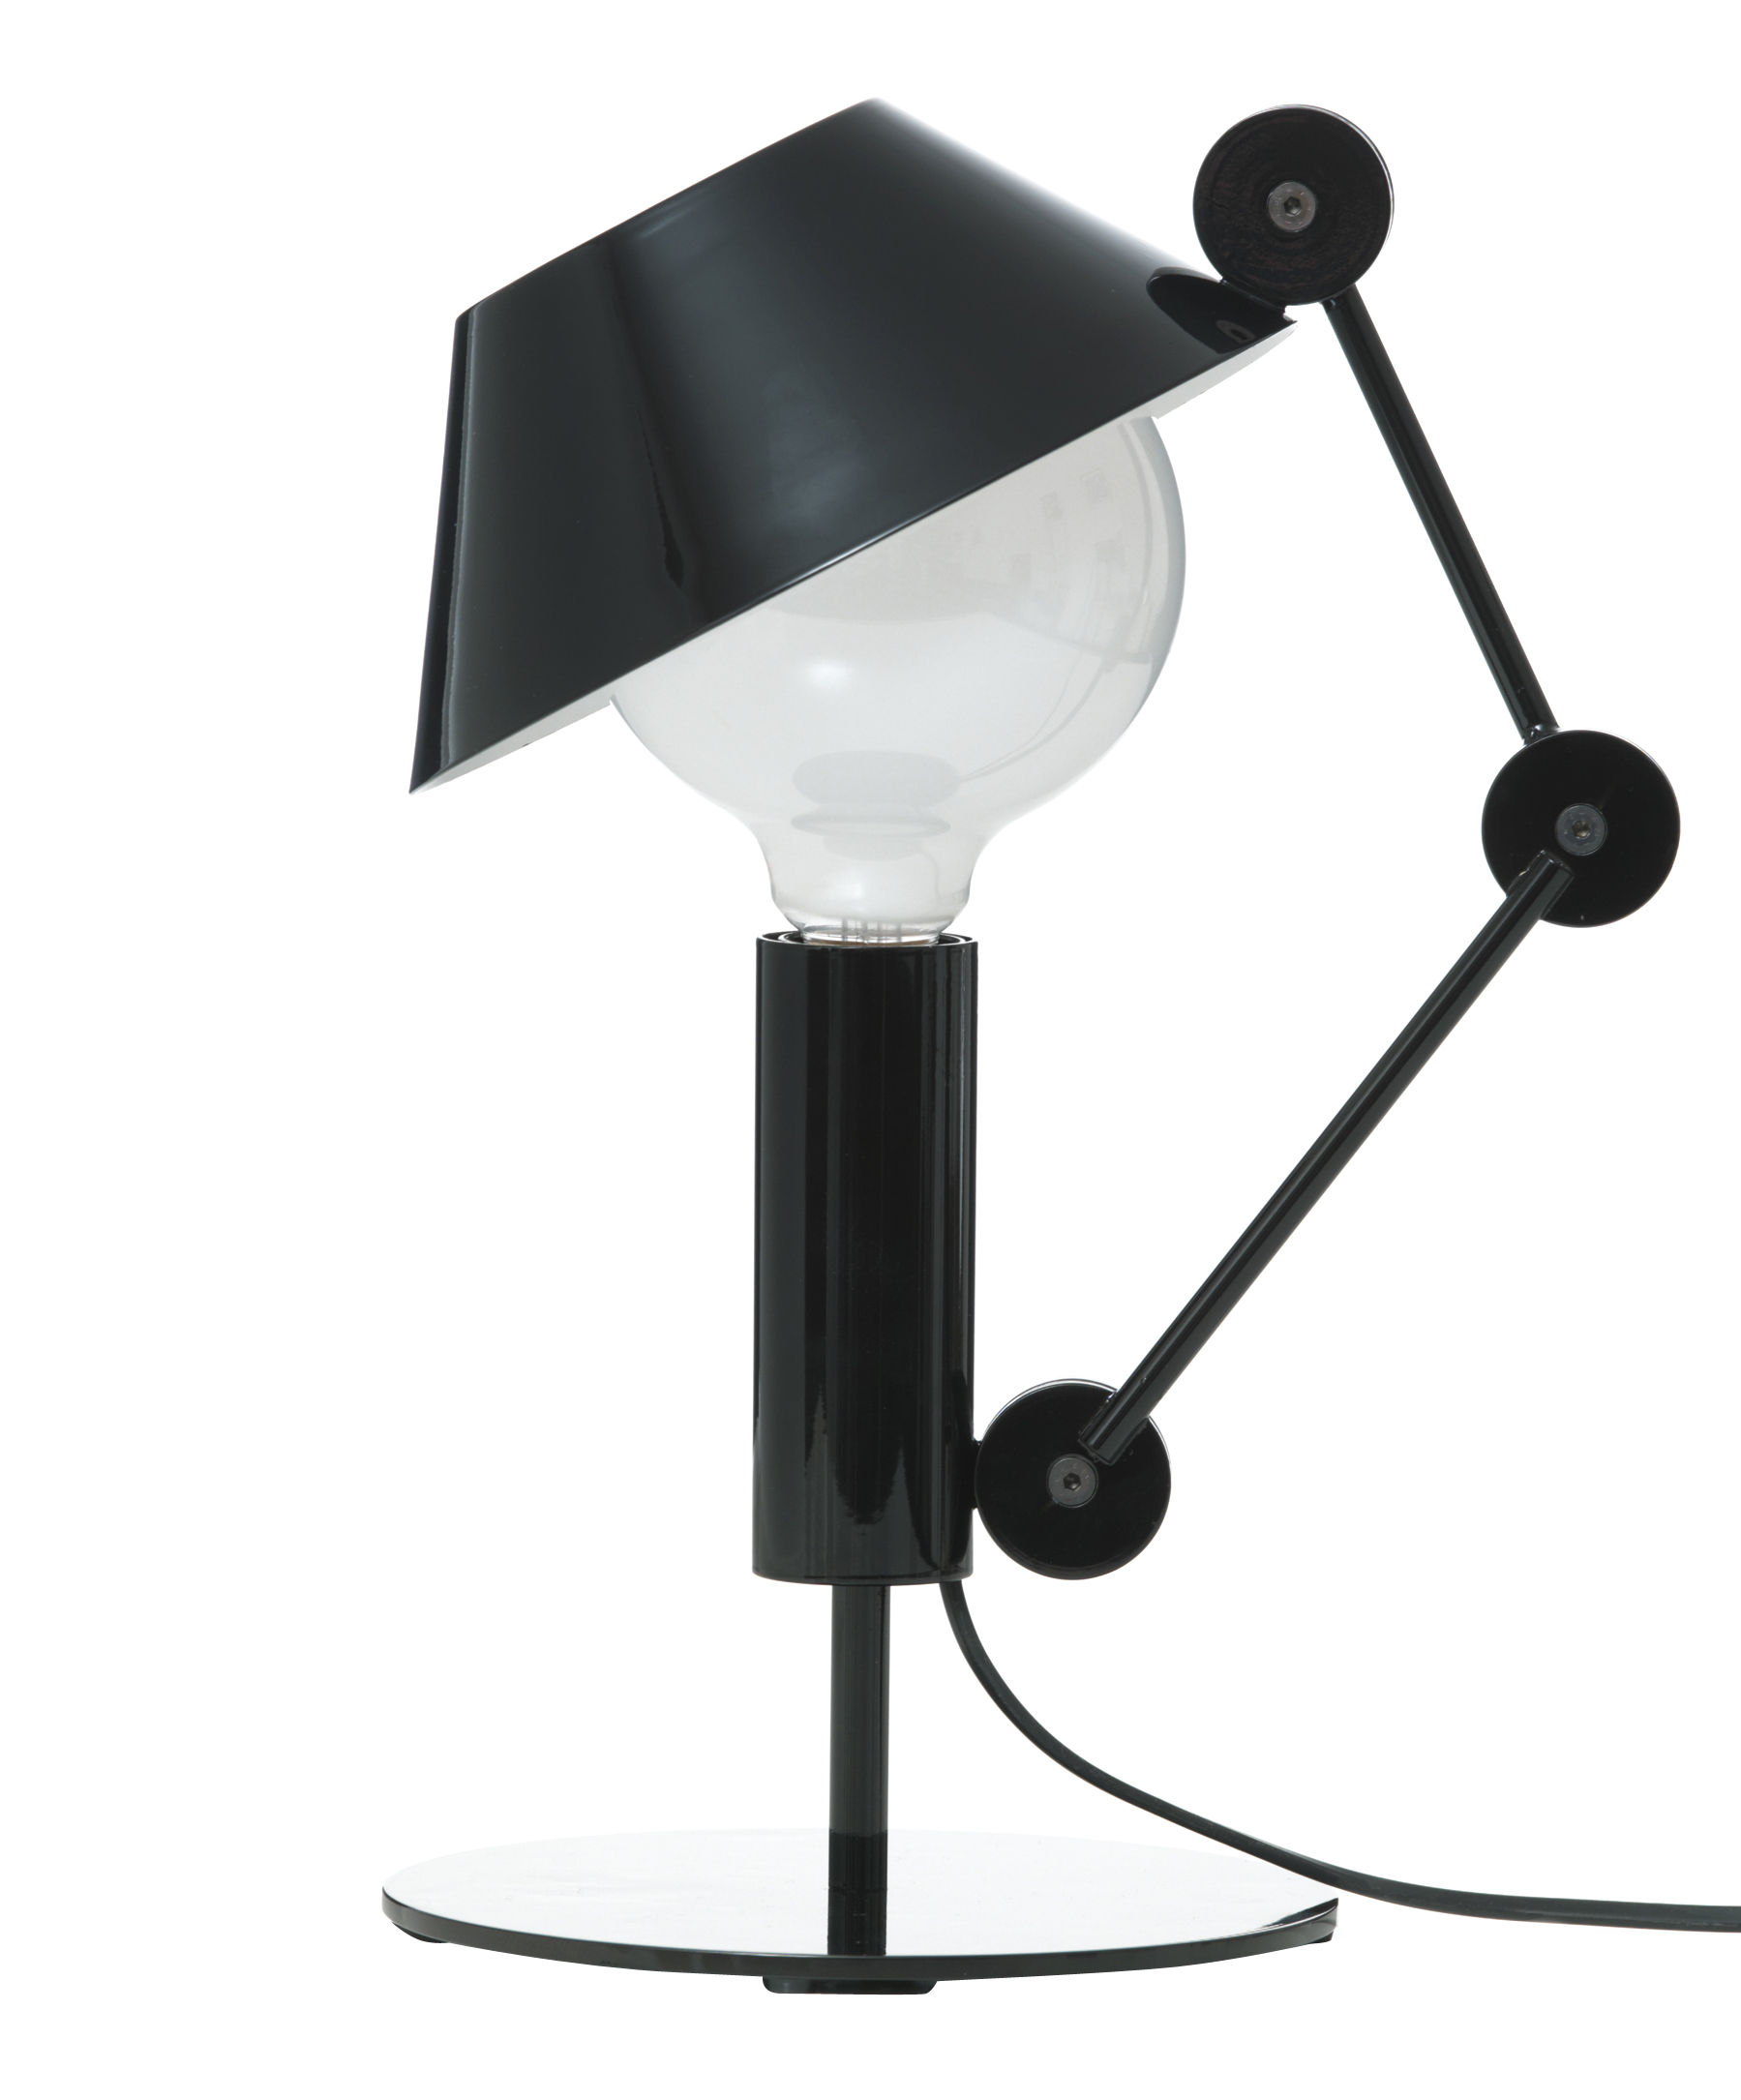 Lighting - Table Lamps - Mr. Light short Table lamp by Nemo - Shiny black / Shiny white inner - Metal